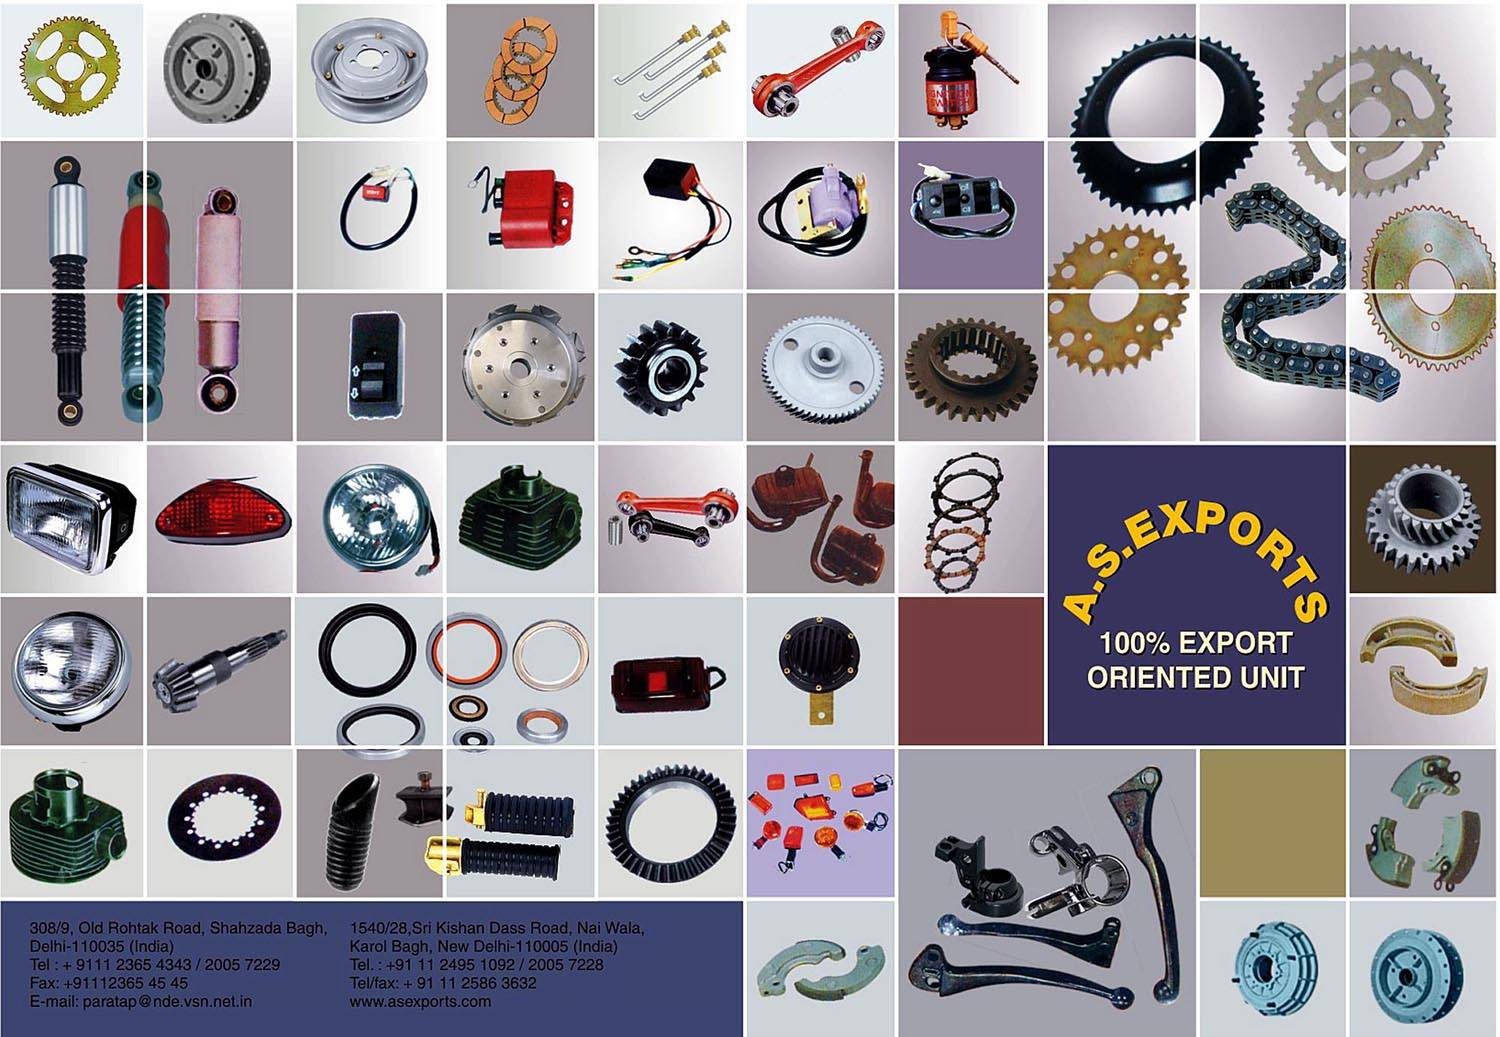 Selling spare parts & accessories for indian origin Scooters,Motorcycles,Mopeds,Portable Genrators.